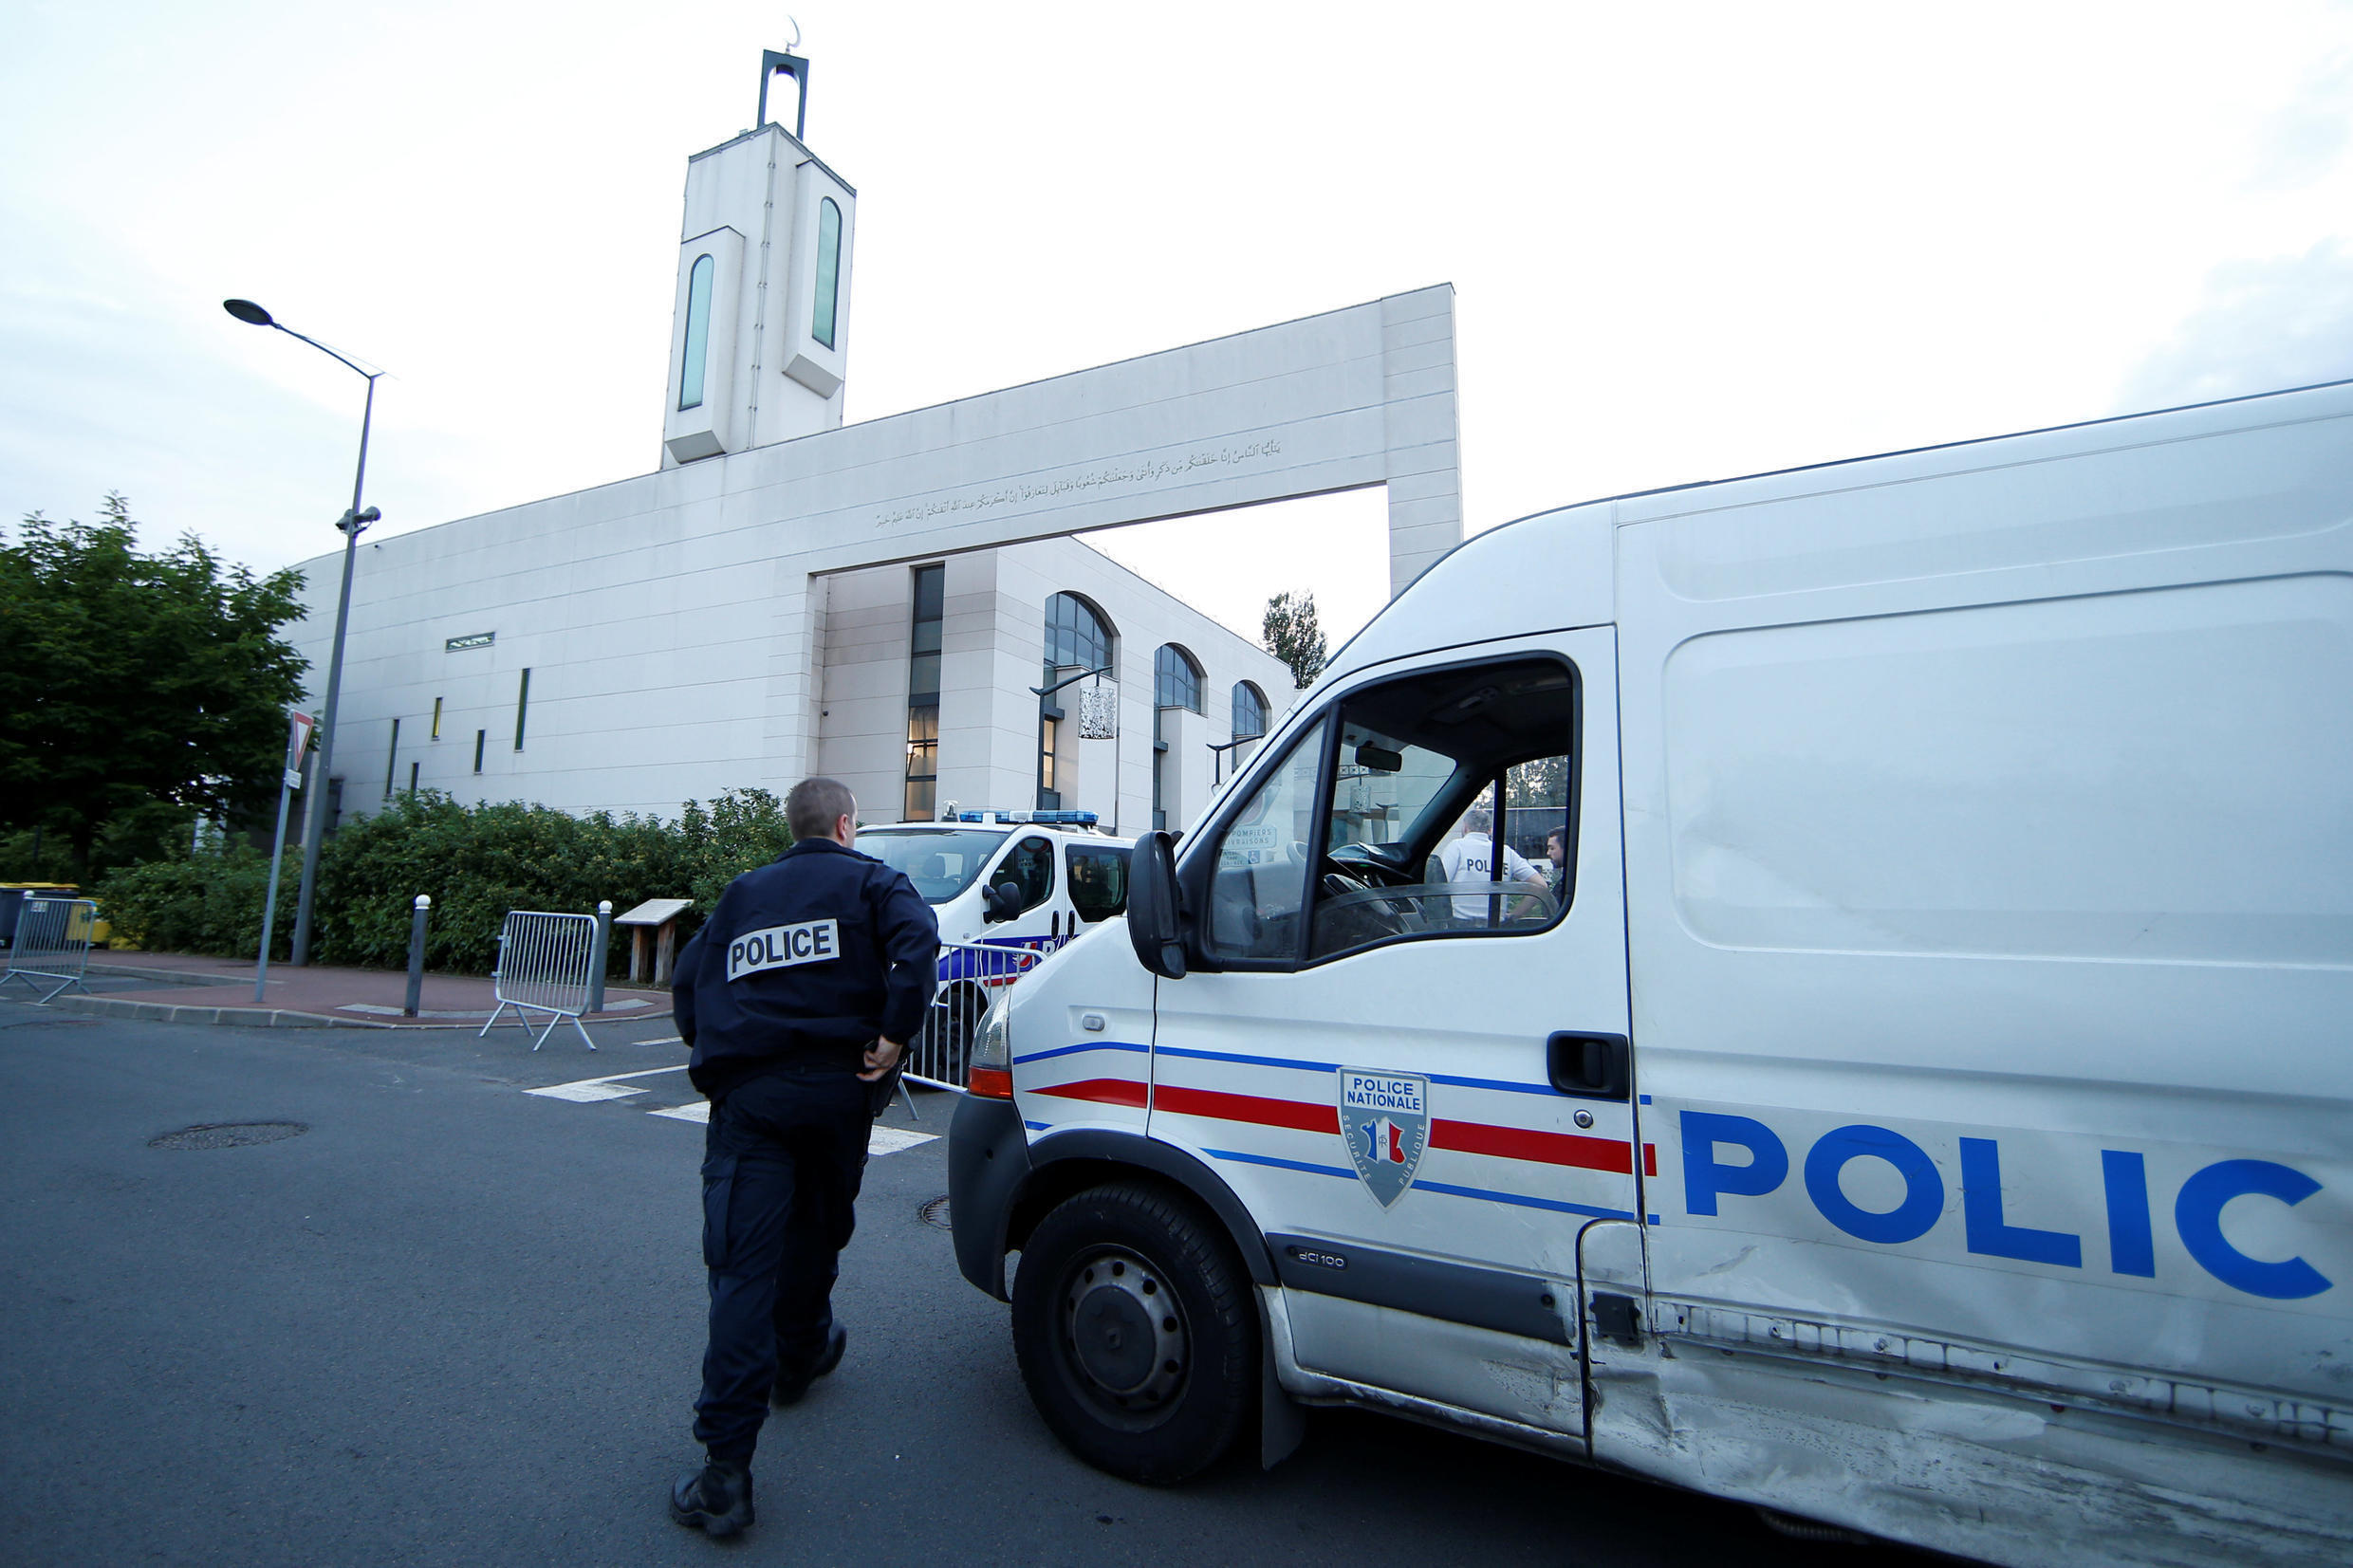 Police secure a mosque in Creteil near Paris, France June 29, 2017 after a man was arrested after trying to drive a car into a crowd in front of the mosque.